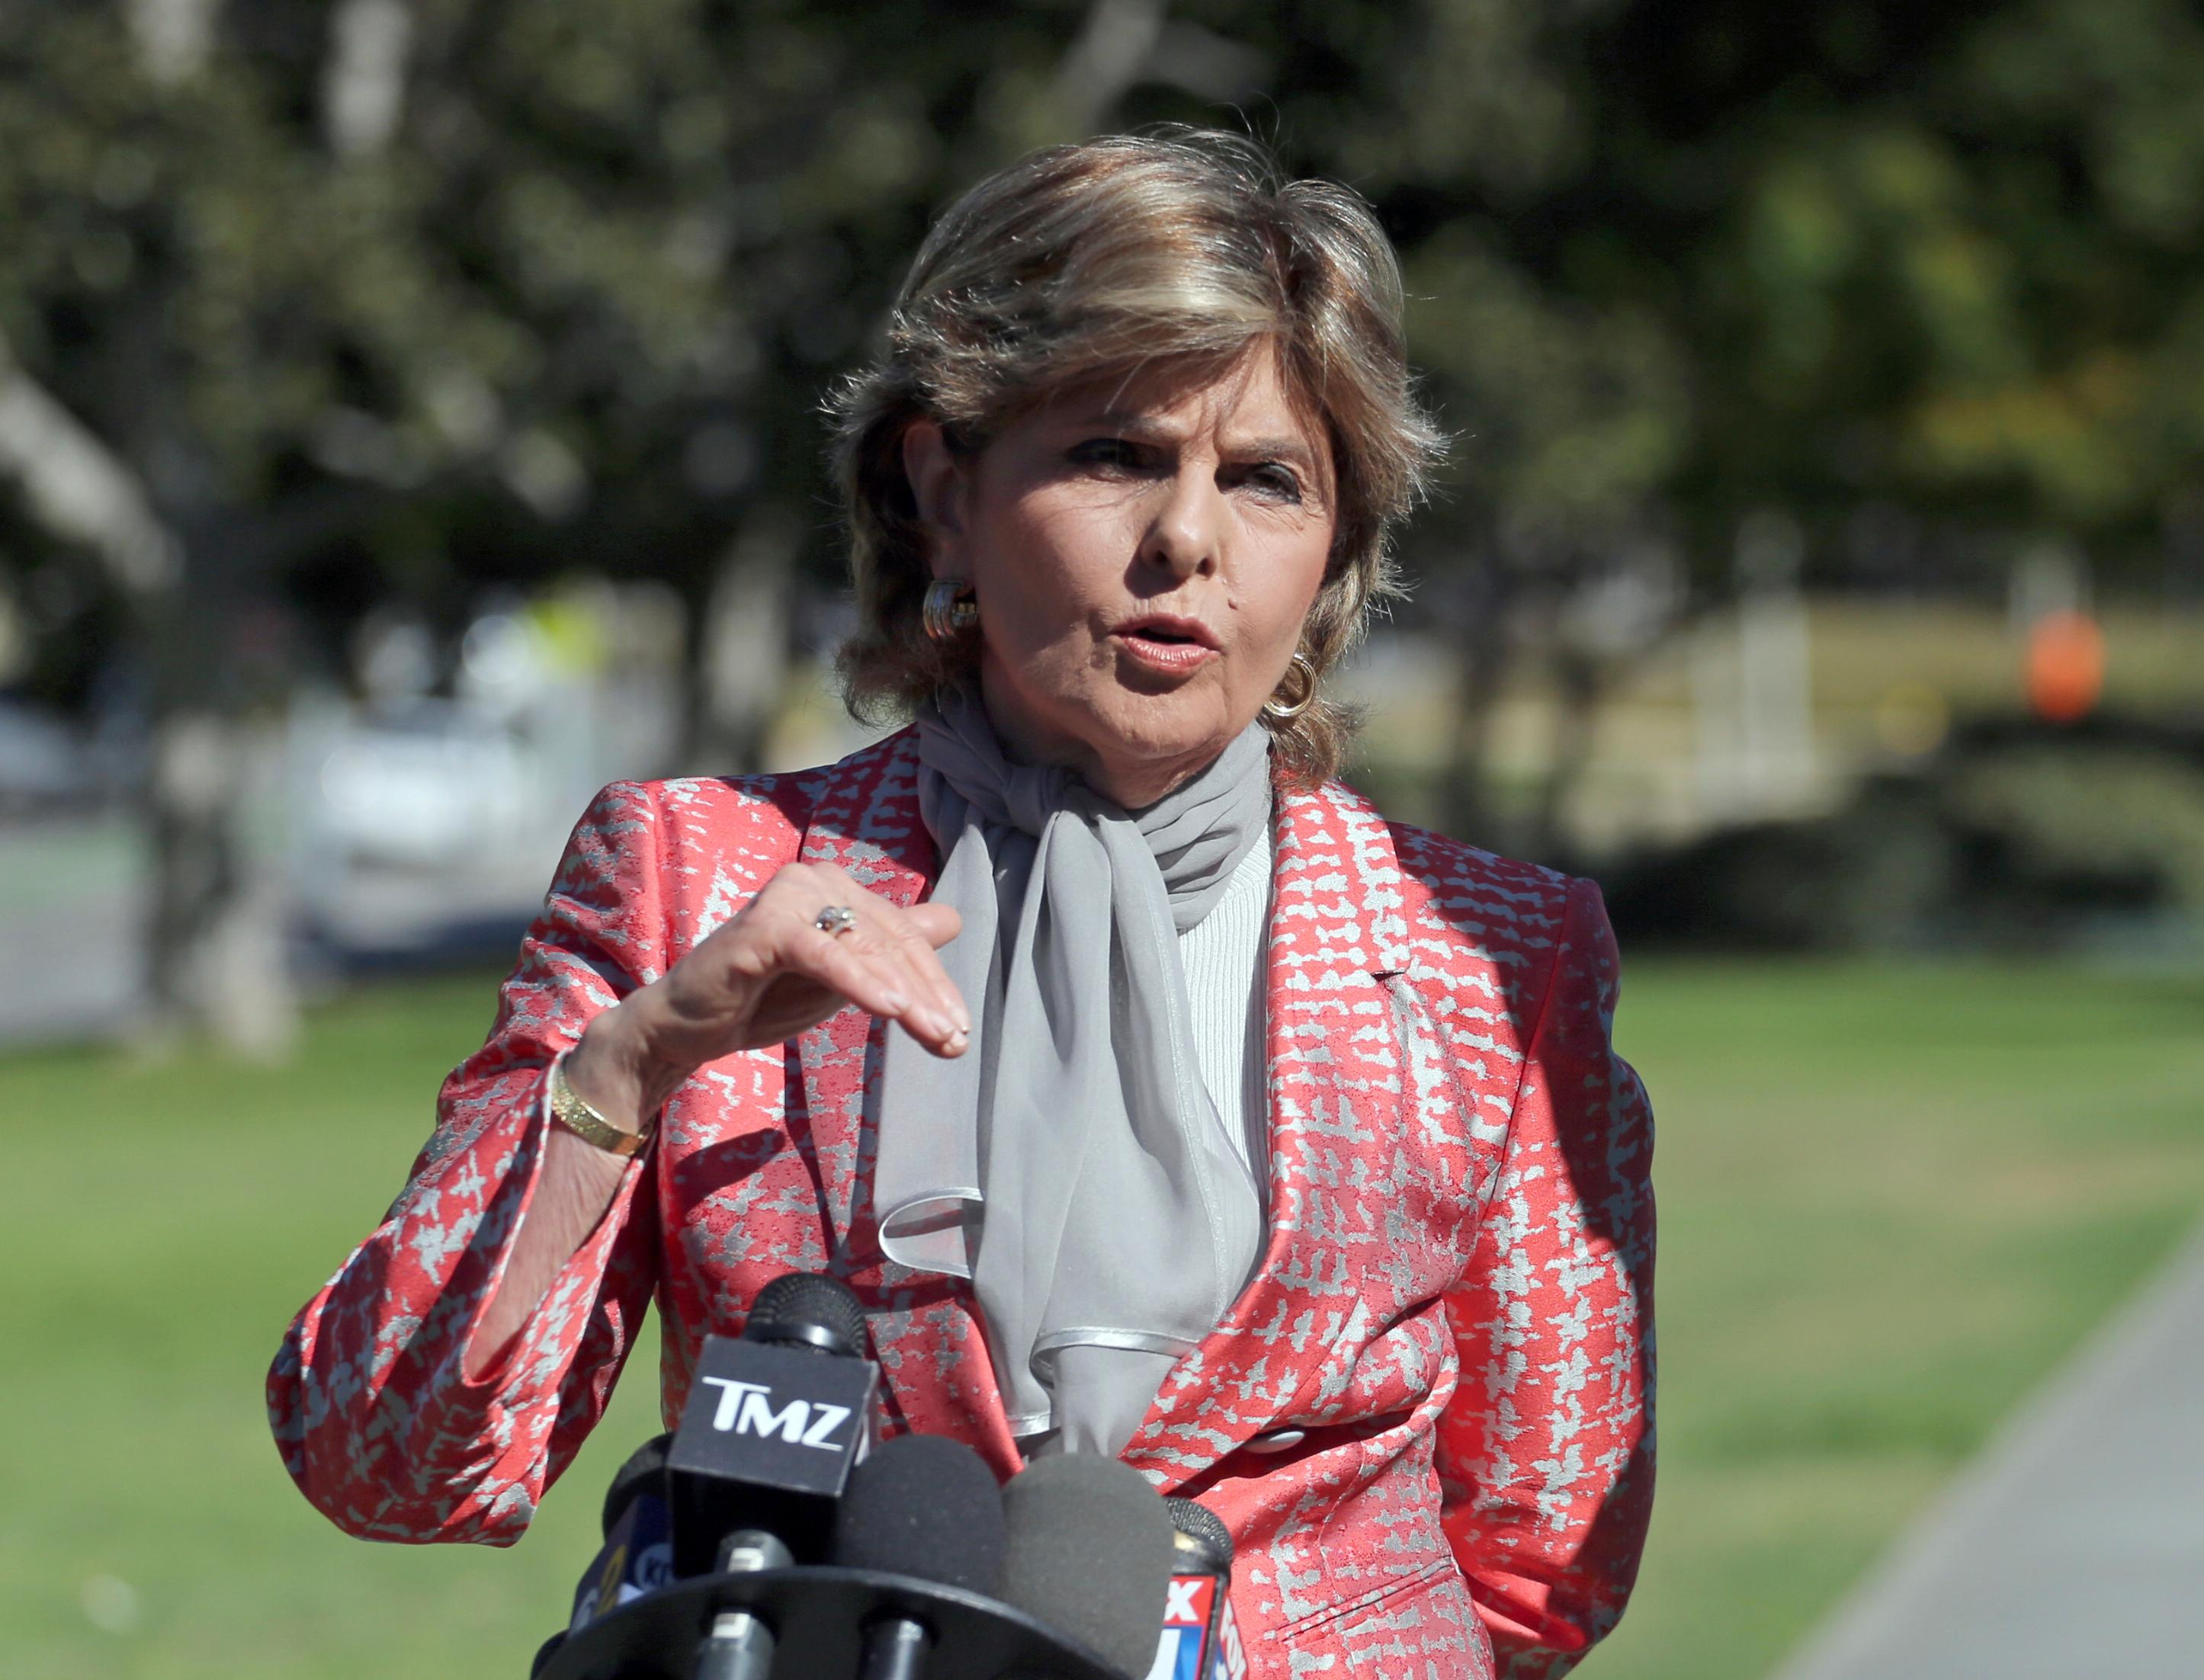 Gloria Allred, attorney for Judy Huth, who alleges entertainer Bill Cosby sexually assaulted her at the Playboy Mansion more than 40 years ago, speaks outside Los Angeles Superior Court after a hearing, Tuesday, June 27, 2017, in Santa Monica, Calif. The purpose of the hearing was to set a trial date in the civil case. (AP Photo/Reed Saxon)